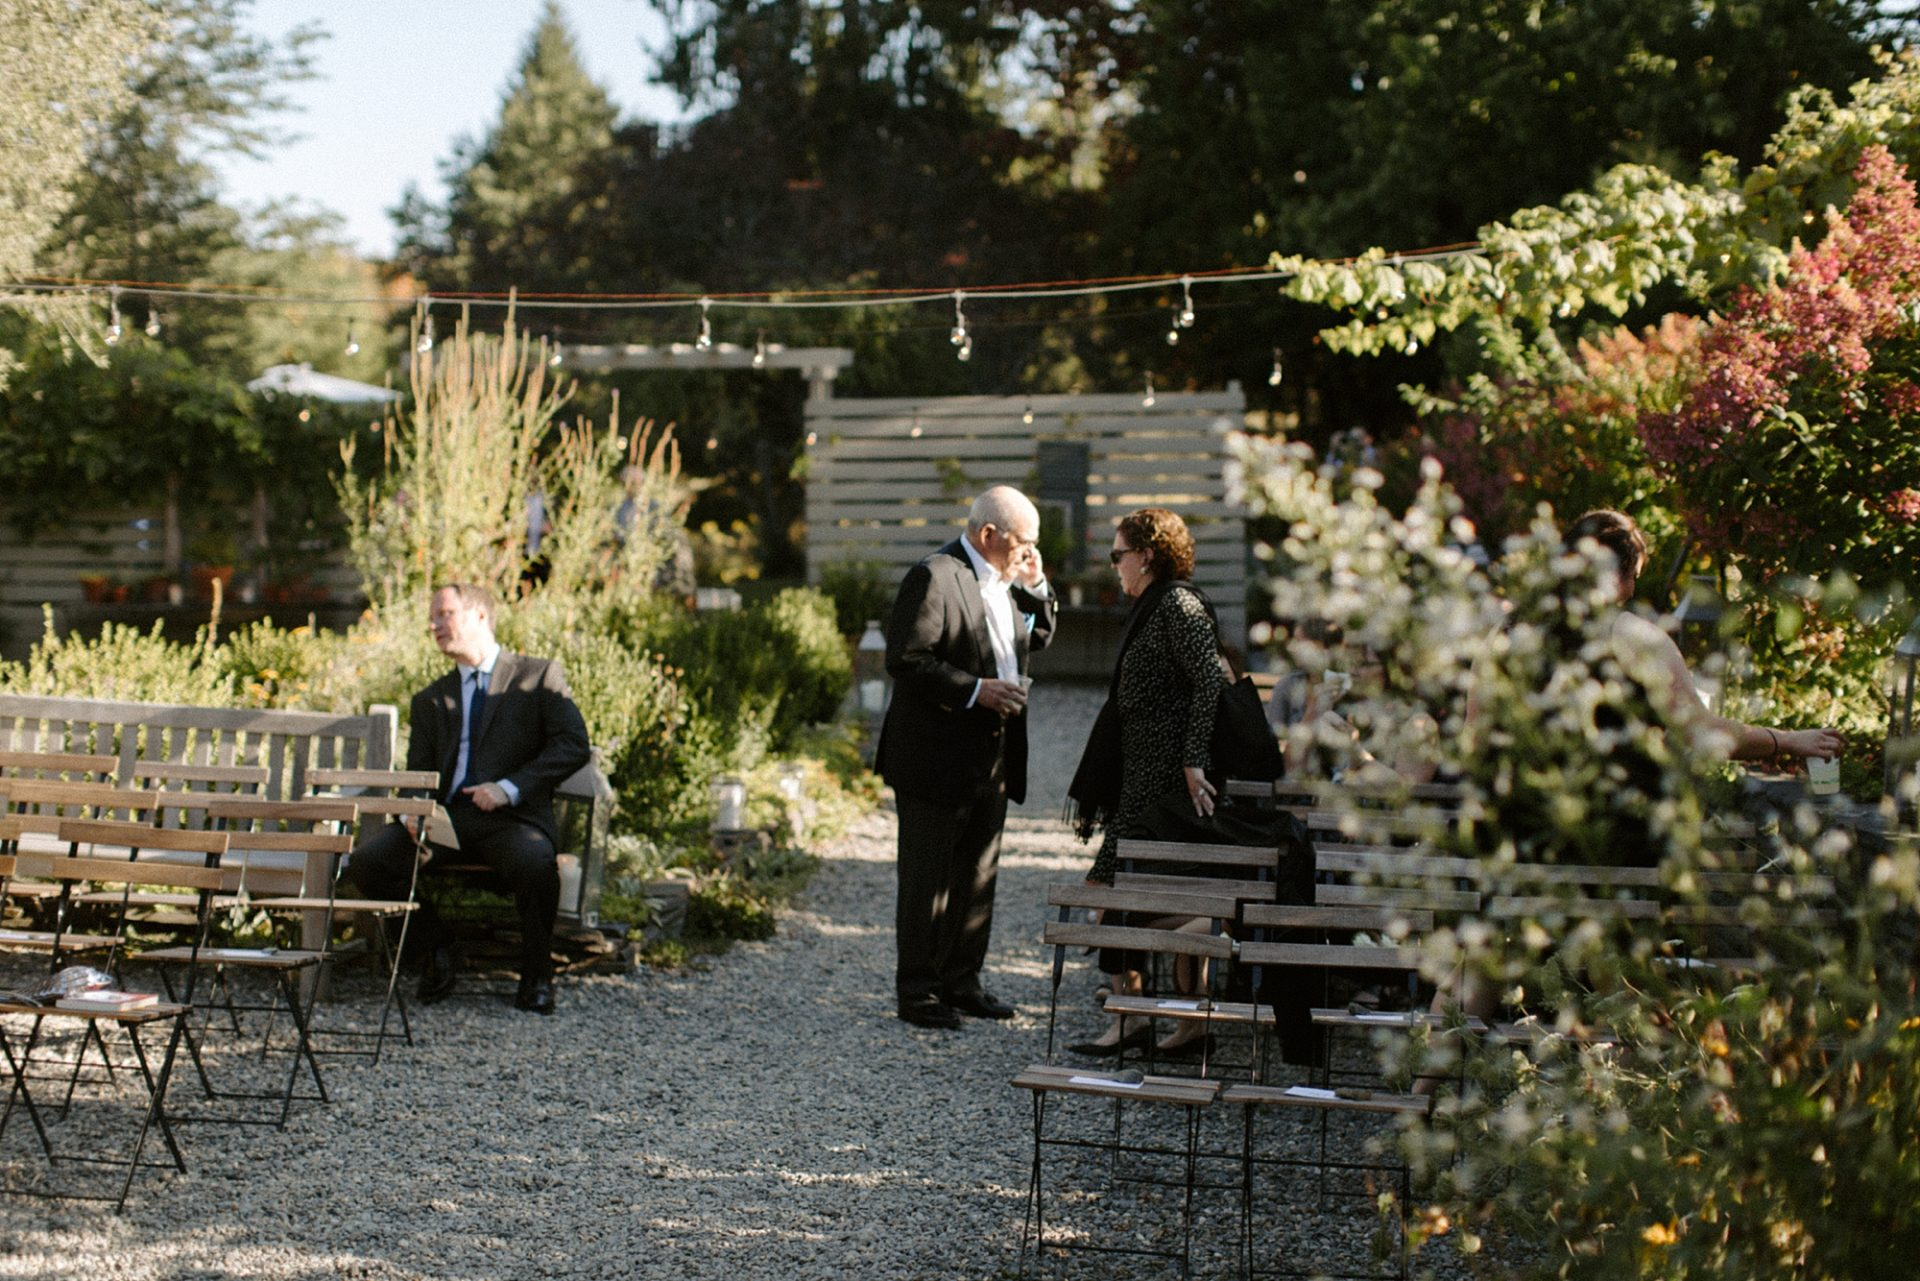 Guests before the wedding at M & D Farm